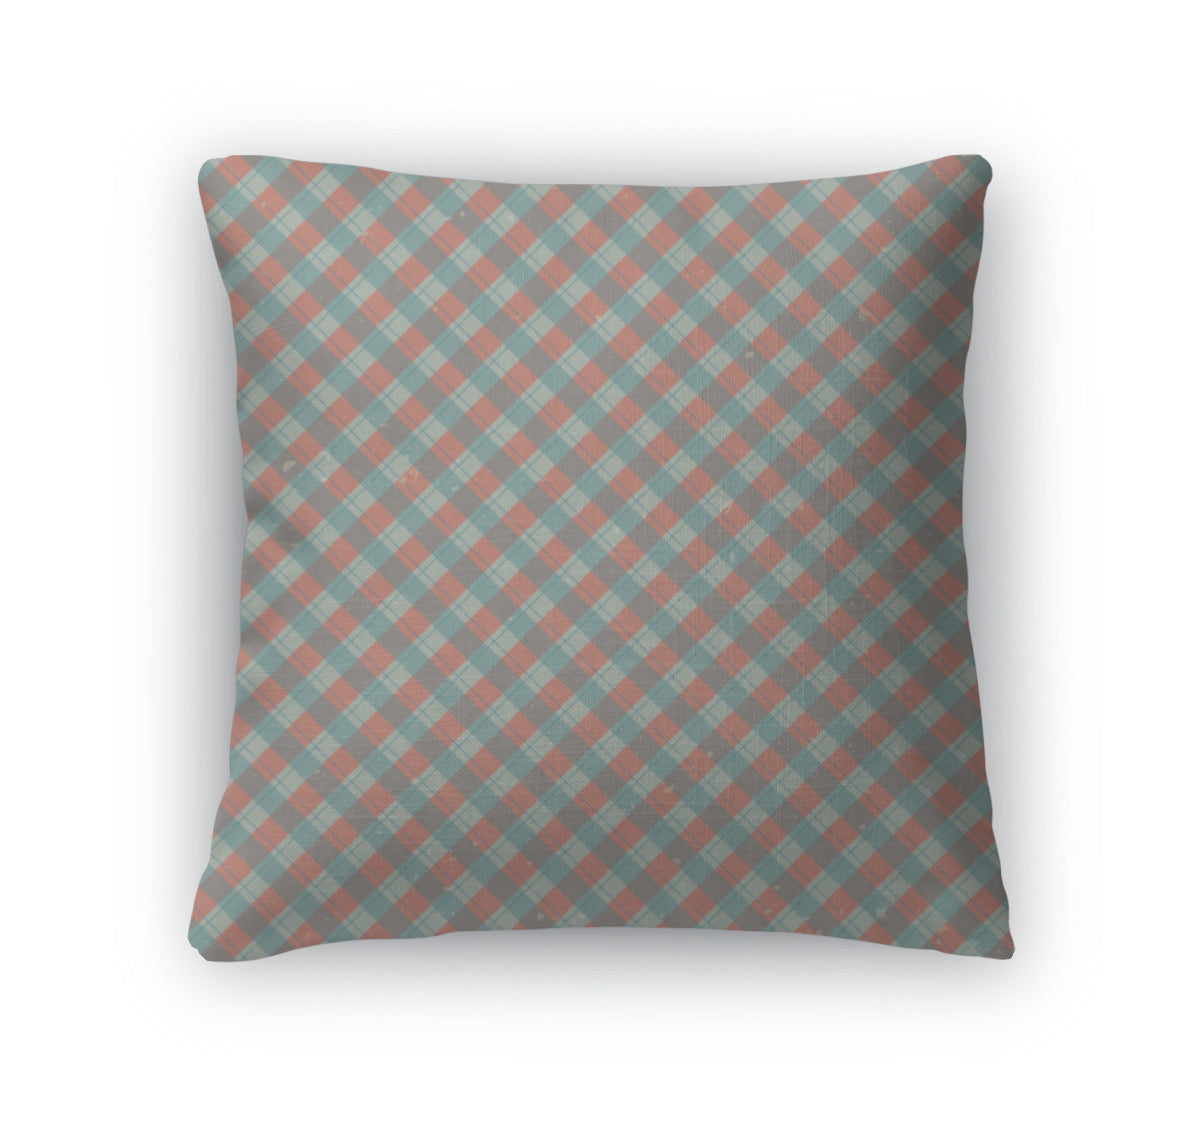 Throw Pillow, Vintage Of Diagonal Plaid Pattern Concept Illustration Pattern - fashionbests